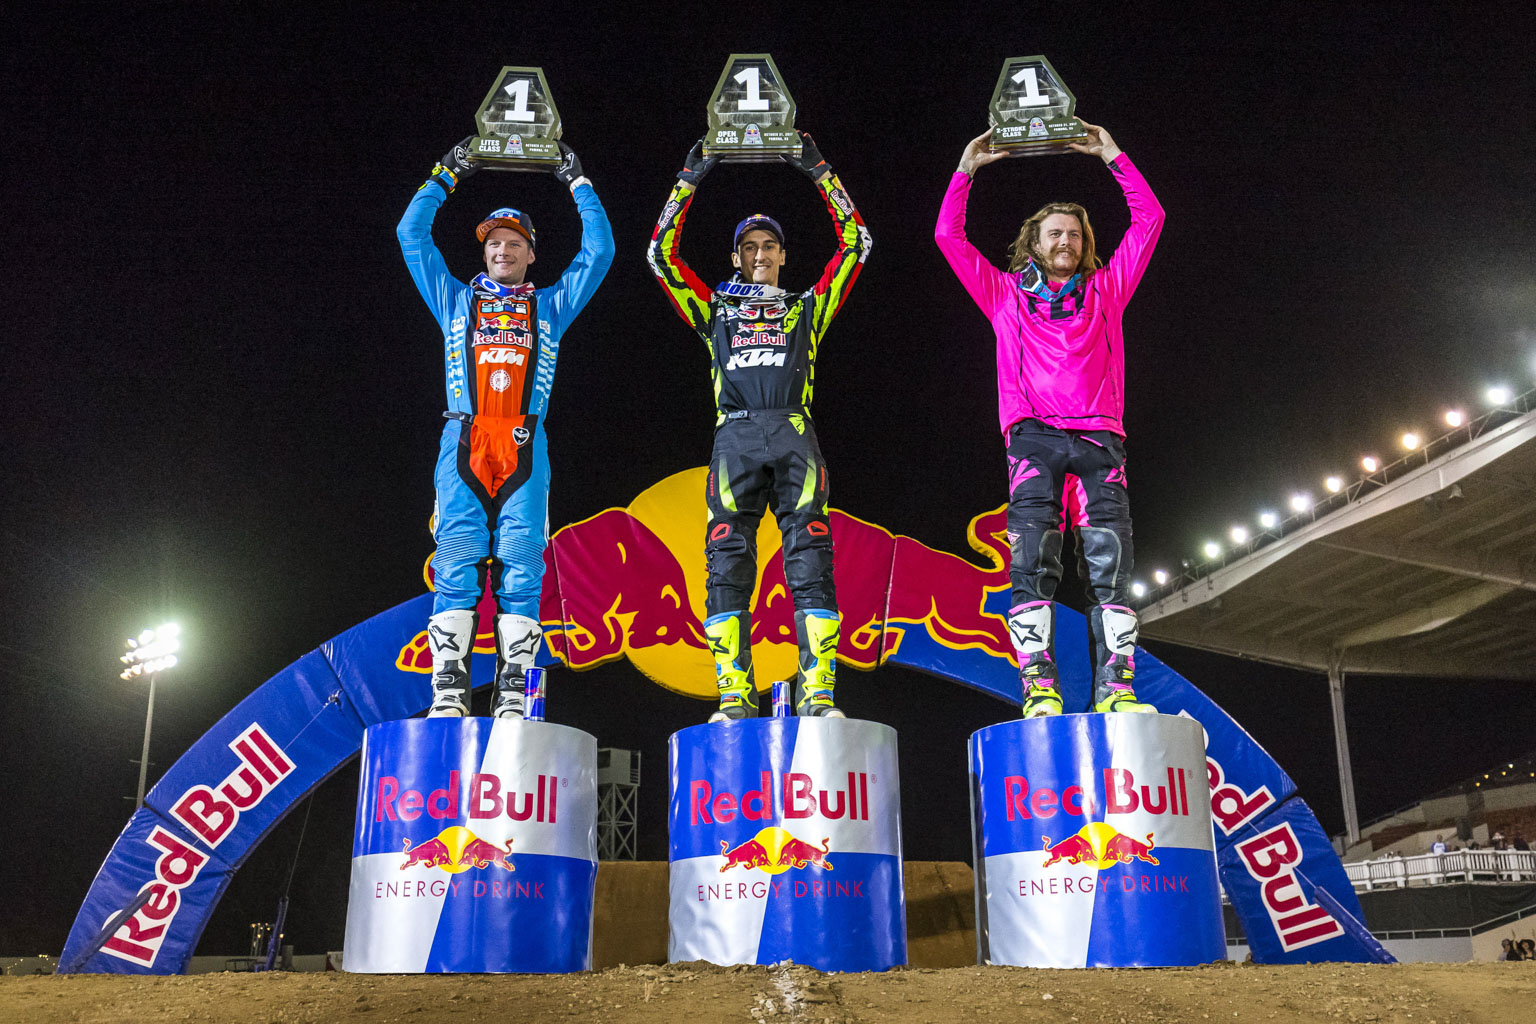 The class winners McElrath, Musquin and Stanke